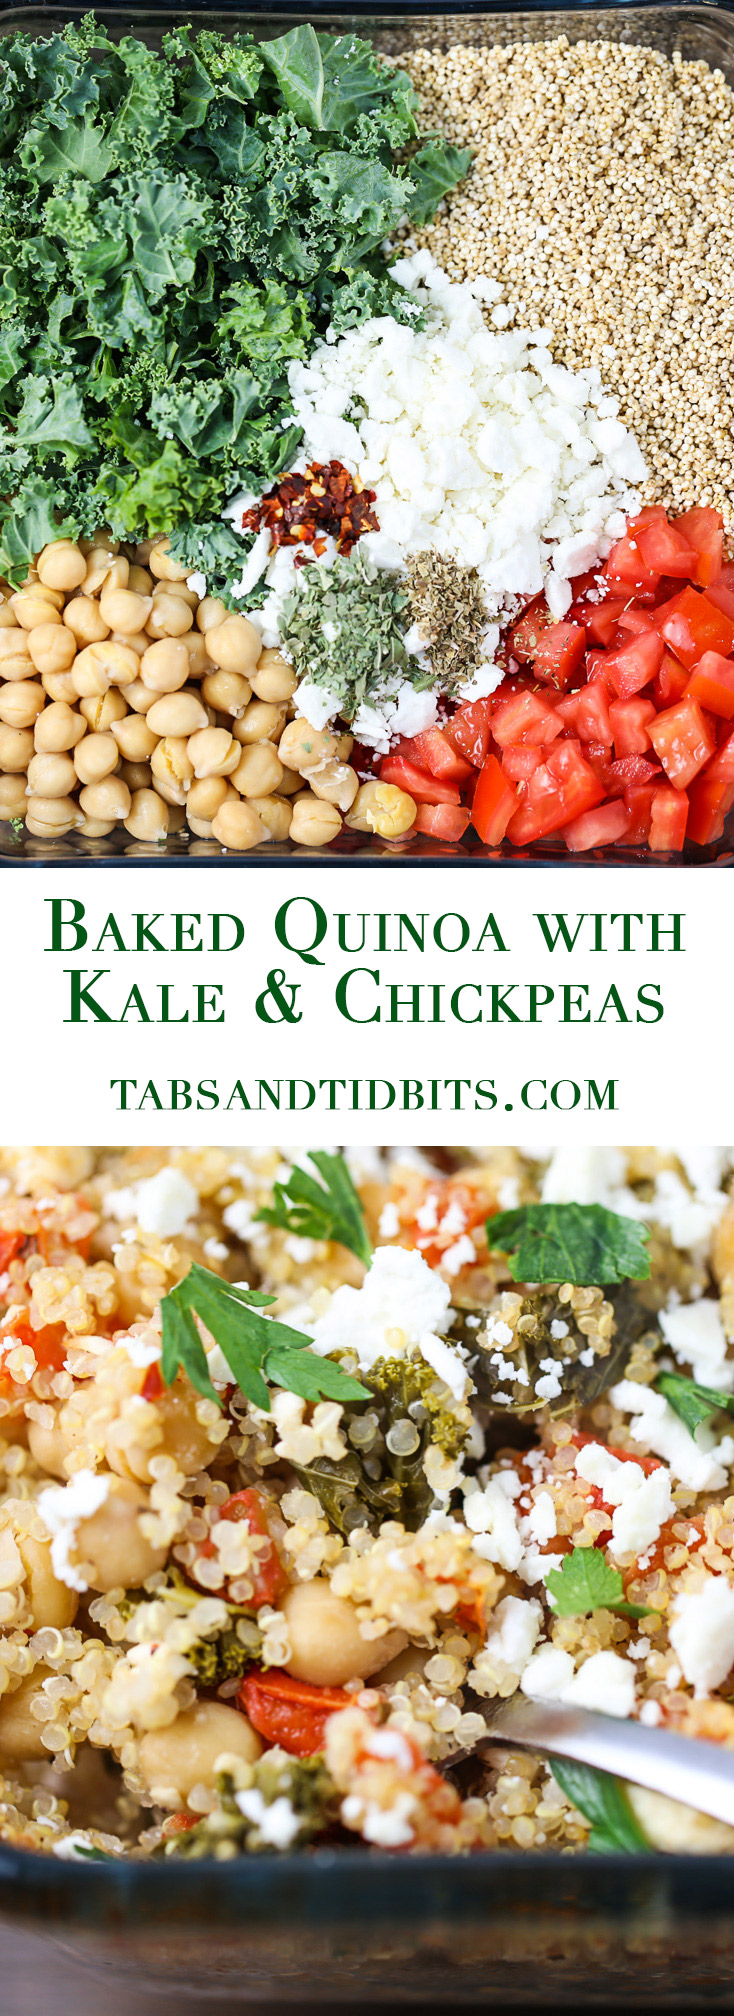 A protein-packed and a flavor-packed vegetarian one dish meal. Yes, the quinoa cooks in the dish too!